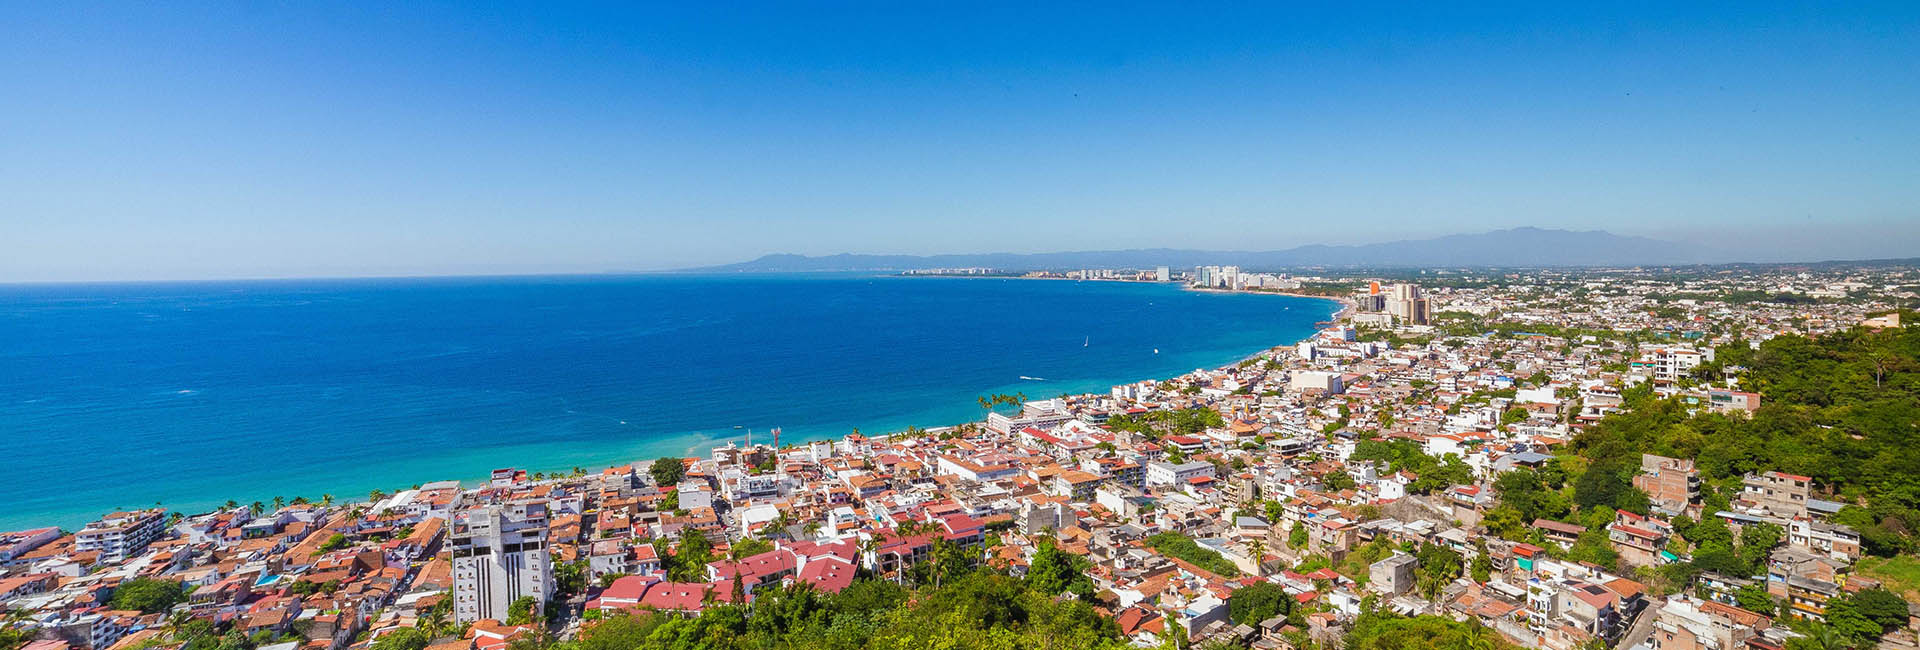 Best places in puerto vallarta to visit in 2019 vdp pv